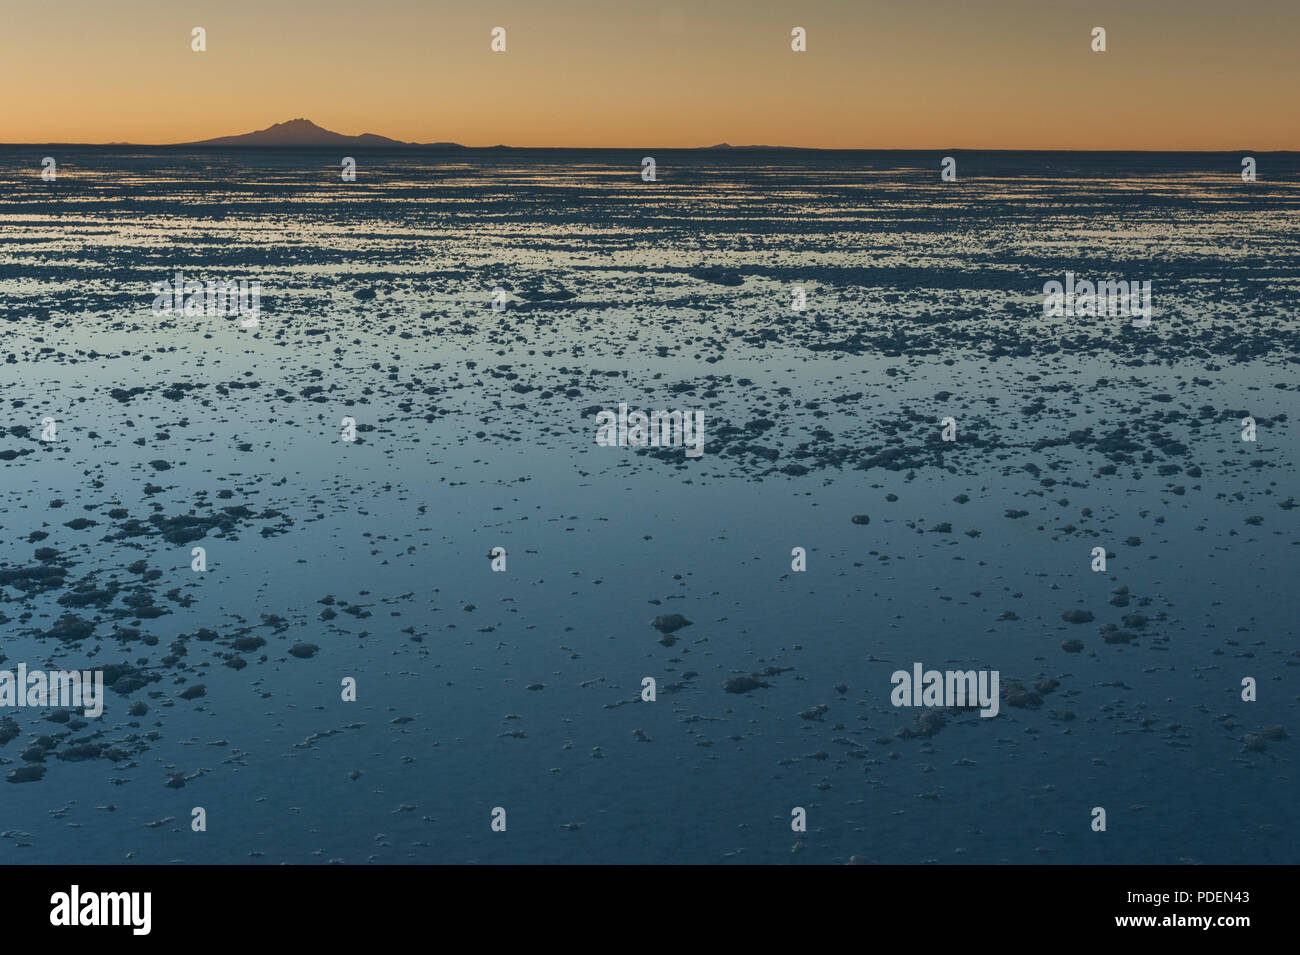 Sunset in the Salar de Uyuni, near Colchani. It is the largest salt flat in the World UNESCO World Heritage Site - Altiplano, Bolivia - Stock Image